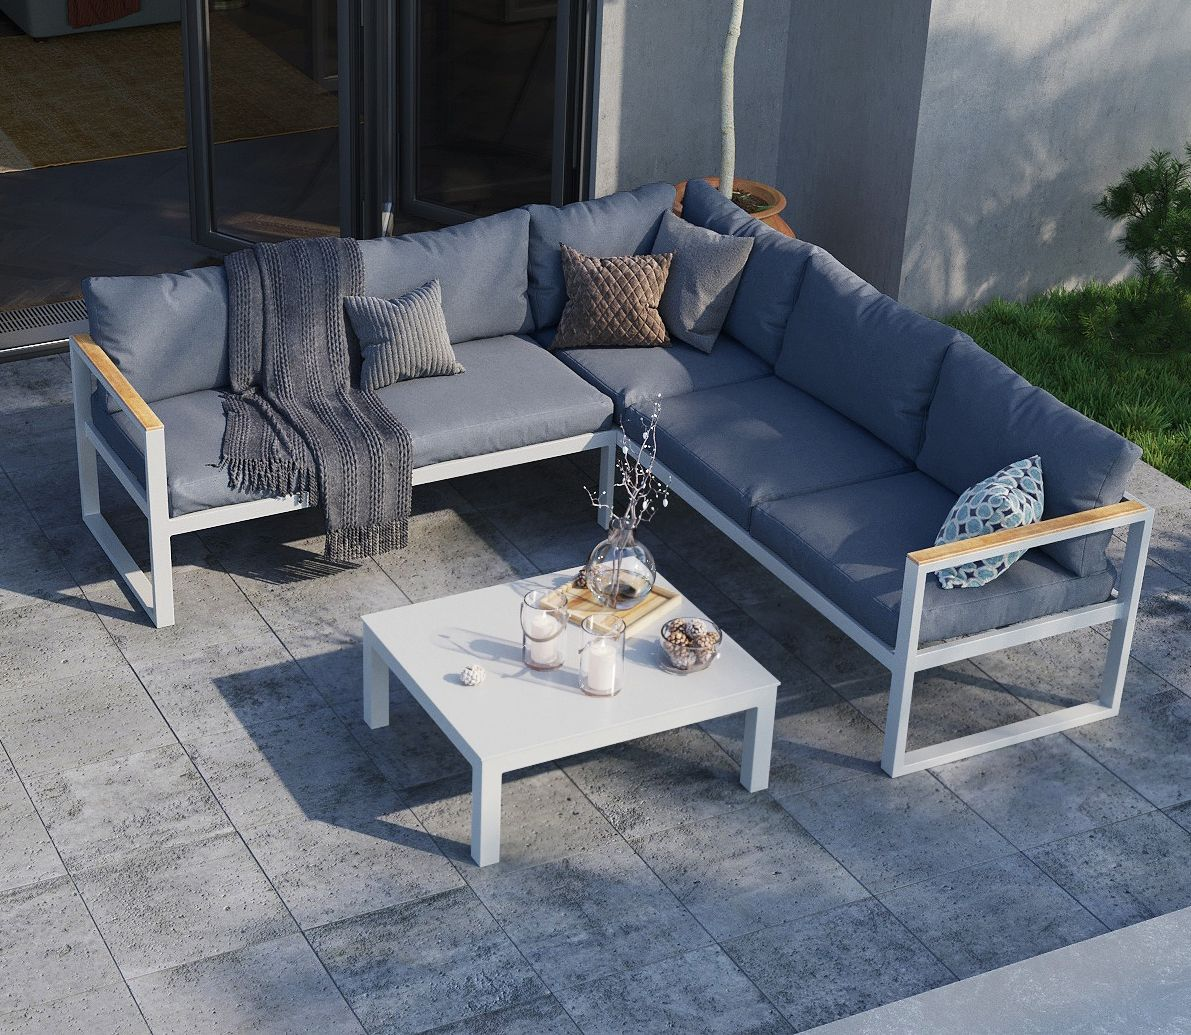 Malibu 5 seater outdoor modular sofa set is designed to please the outdoor crowd whether